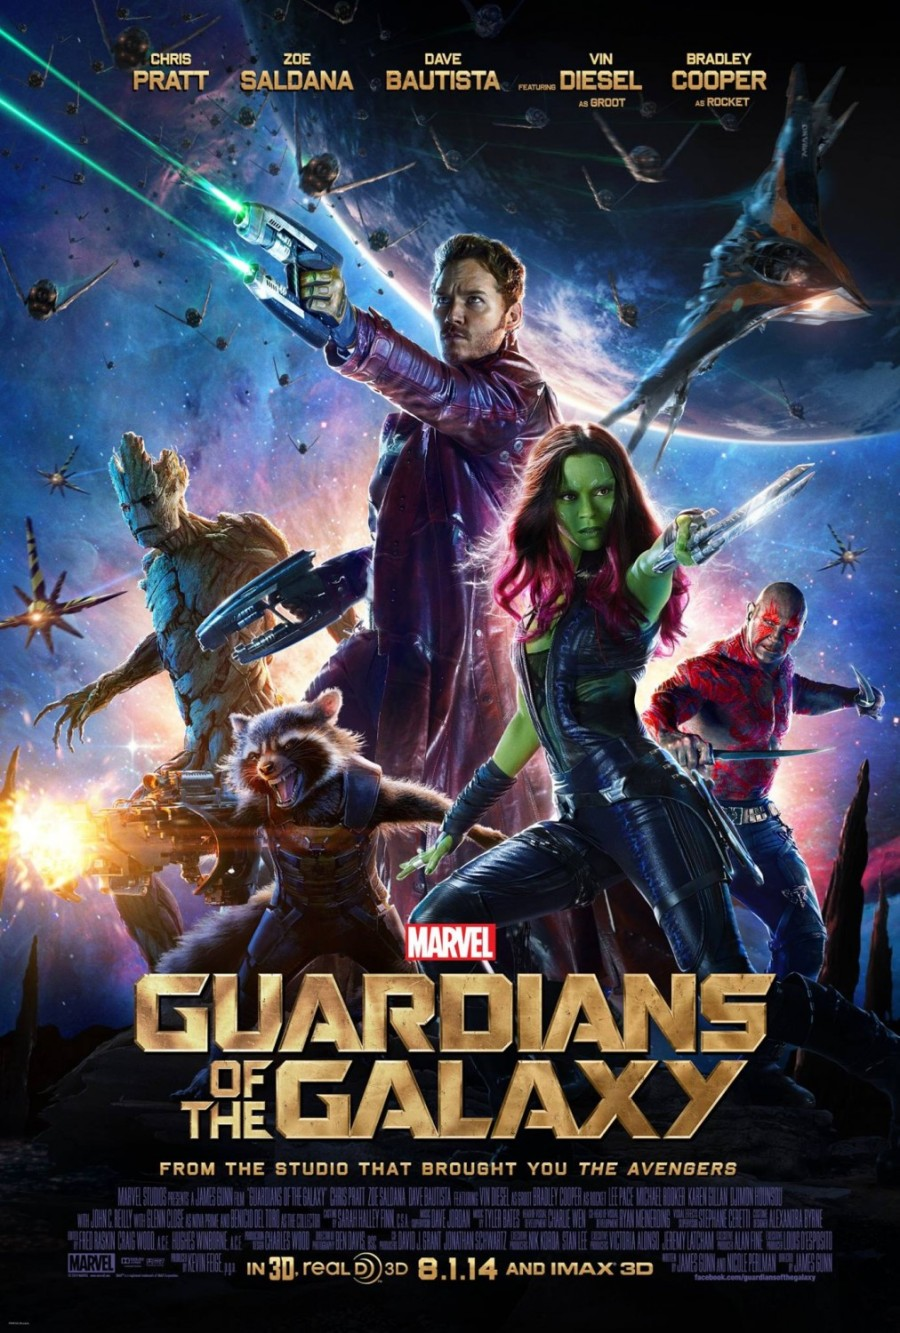 guardians-of-the-galaxy-movie-poster-marvel-cinematic-universe-1038897